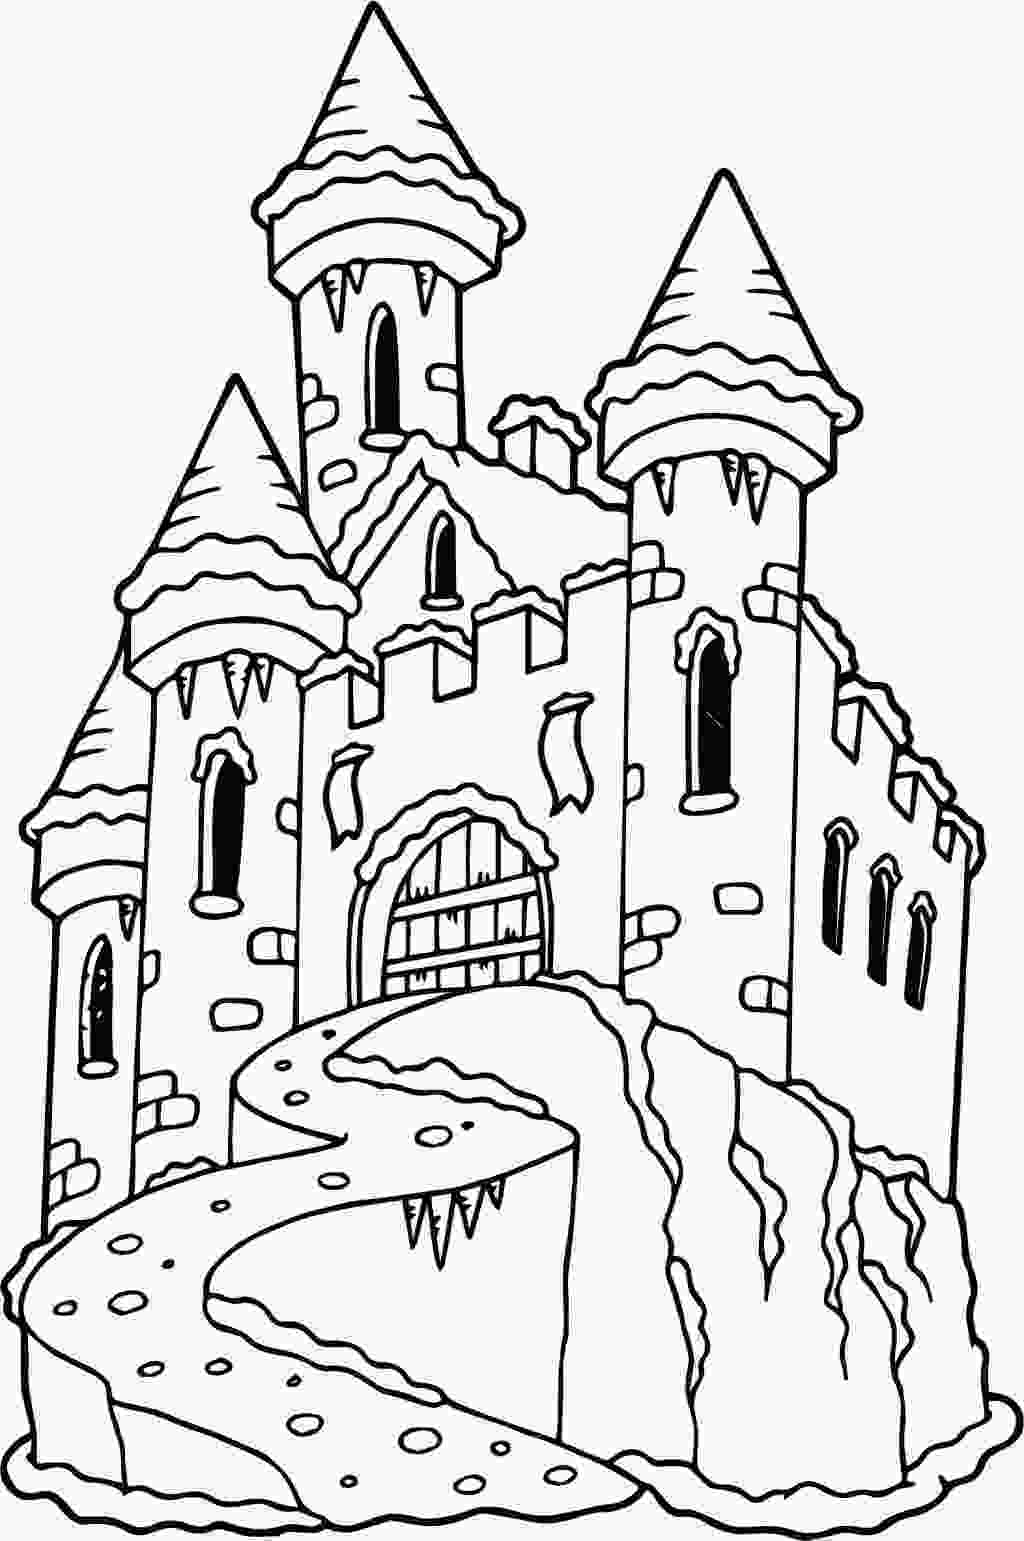 castle coloring page frozen castle drawing at getdrawingscom free for personal use frozen castle drawing